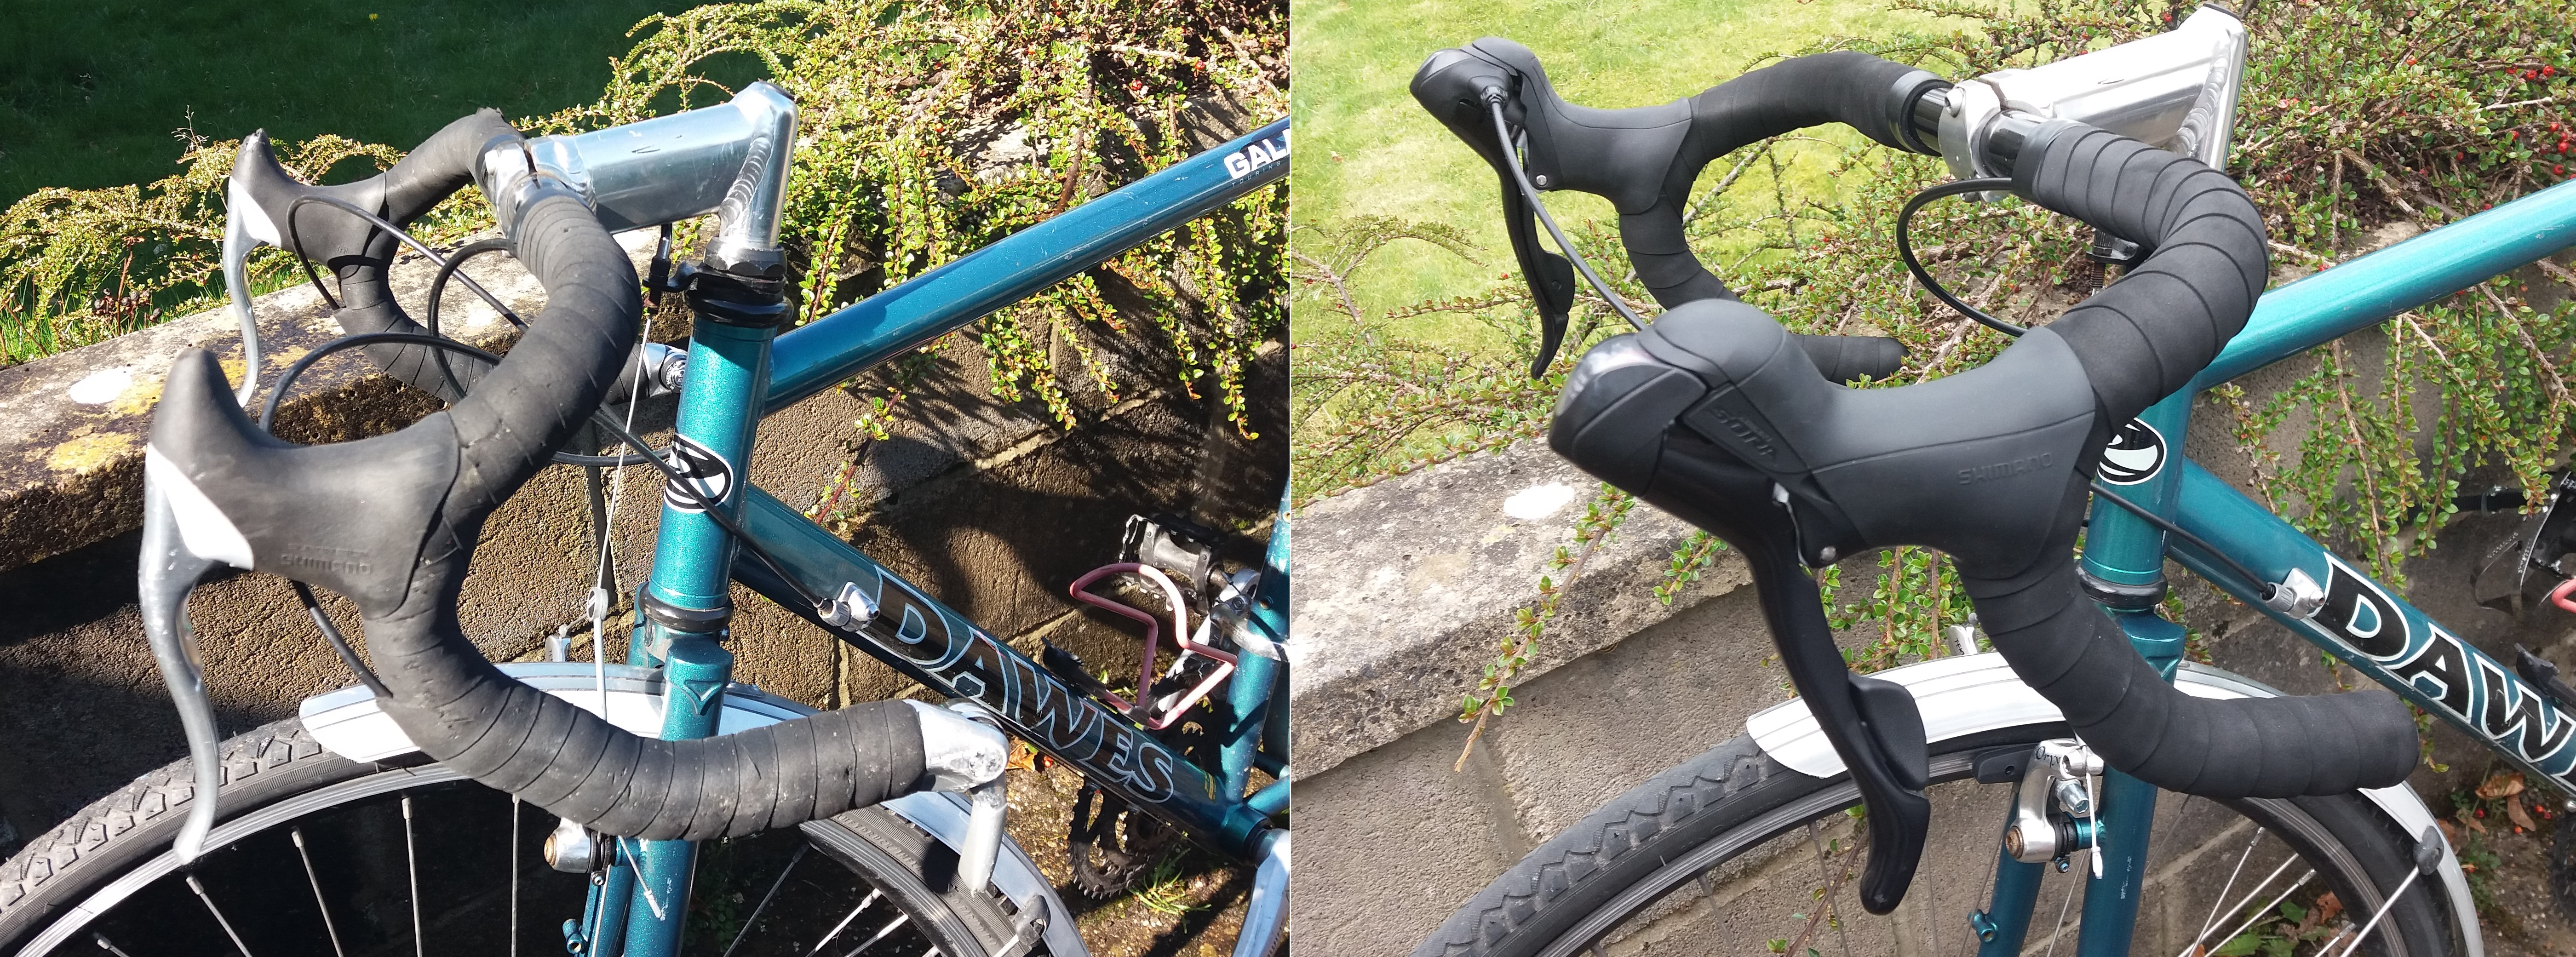 Updating shifters - Before and after